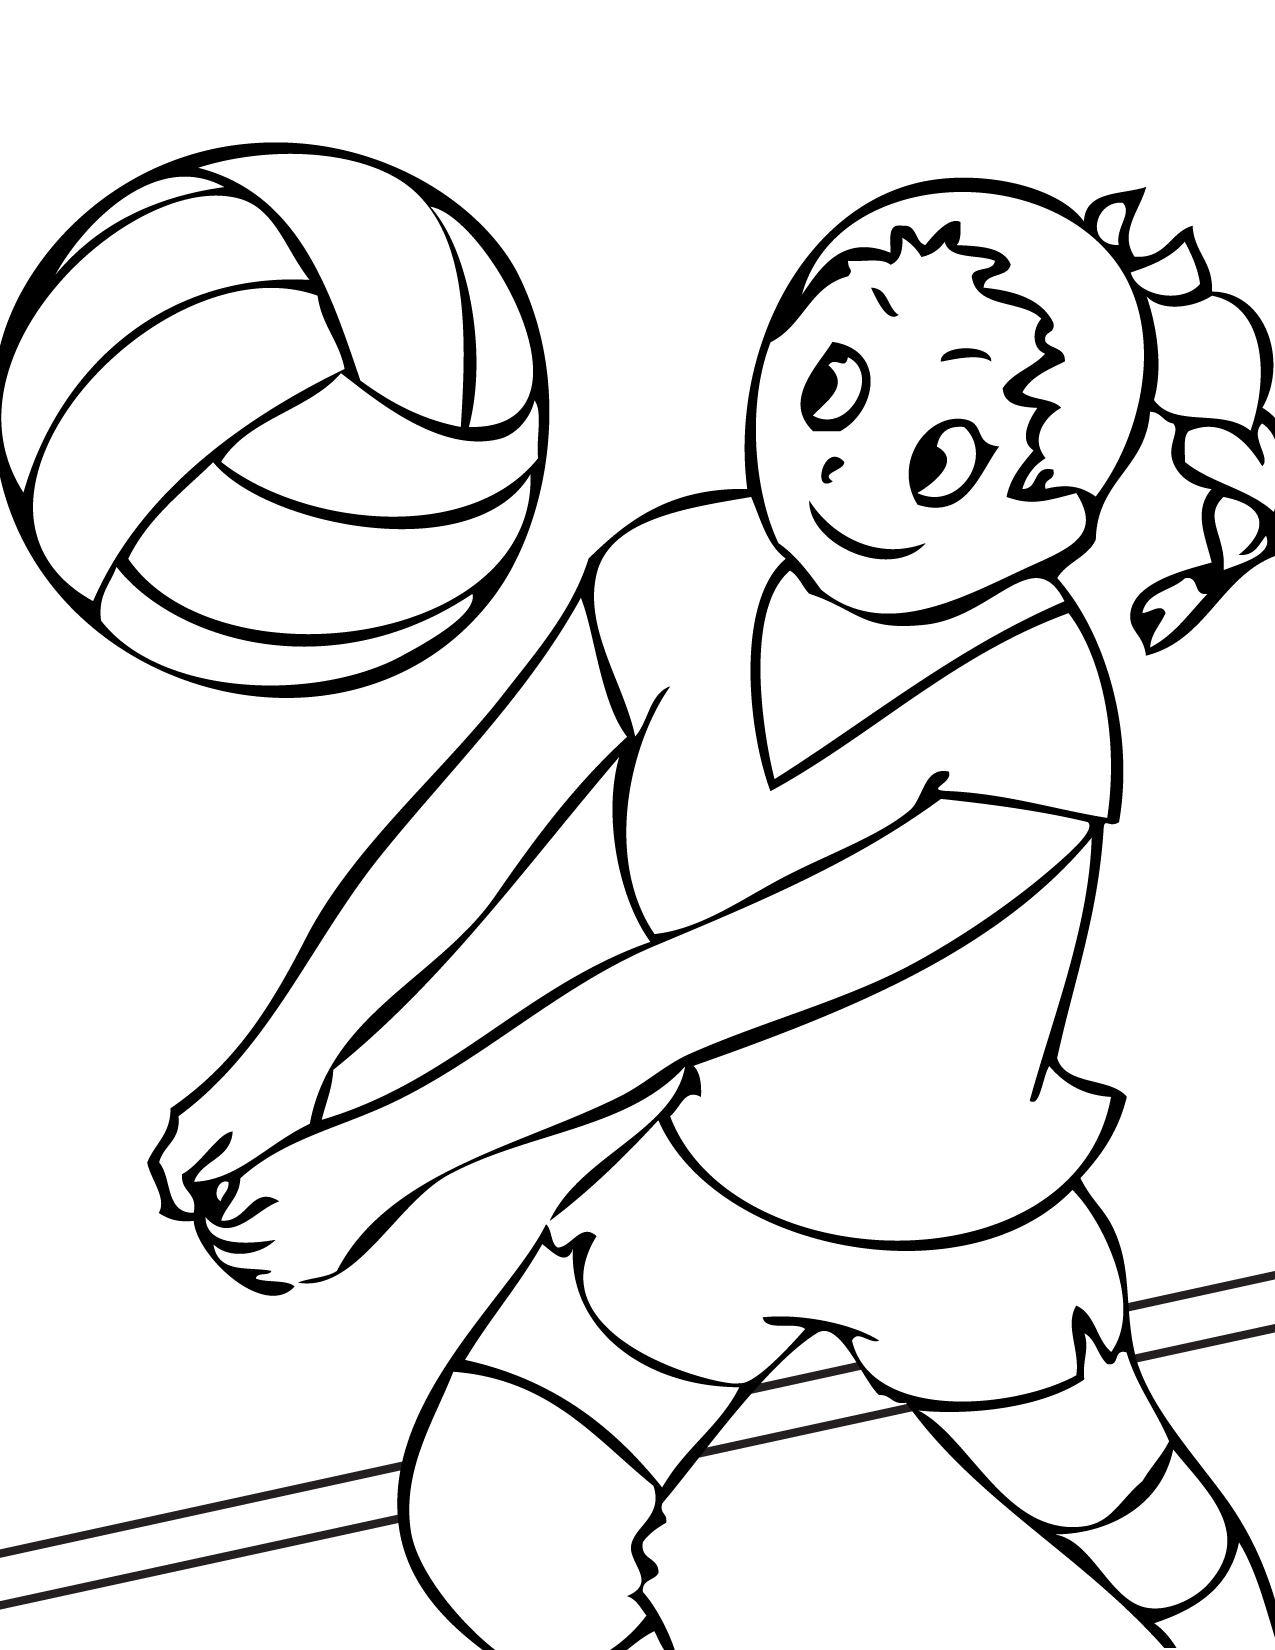 1275x1650 Easily Volleyball Coloring Pages Ball Page Wecoloringpage